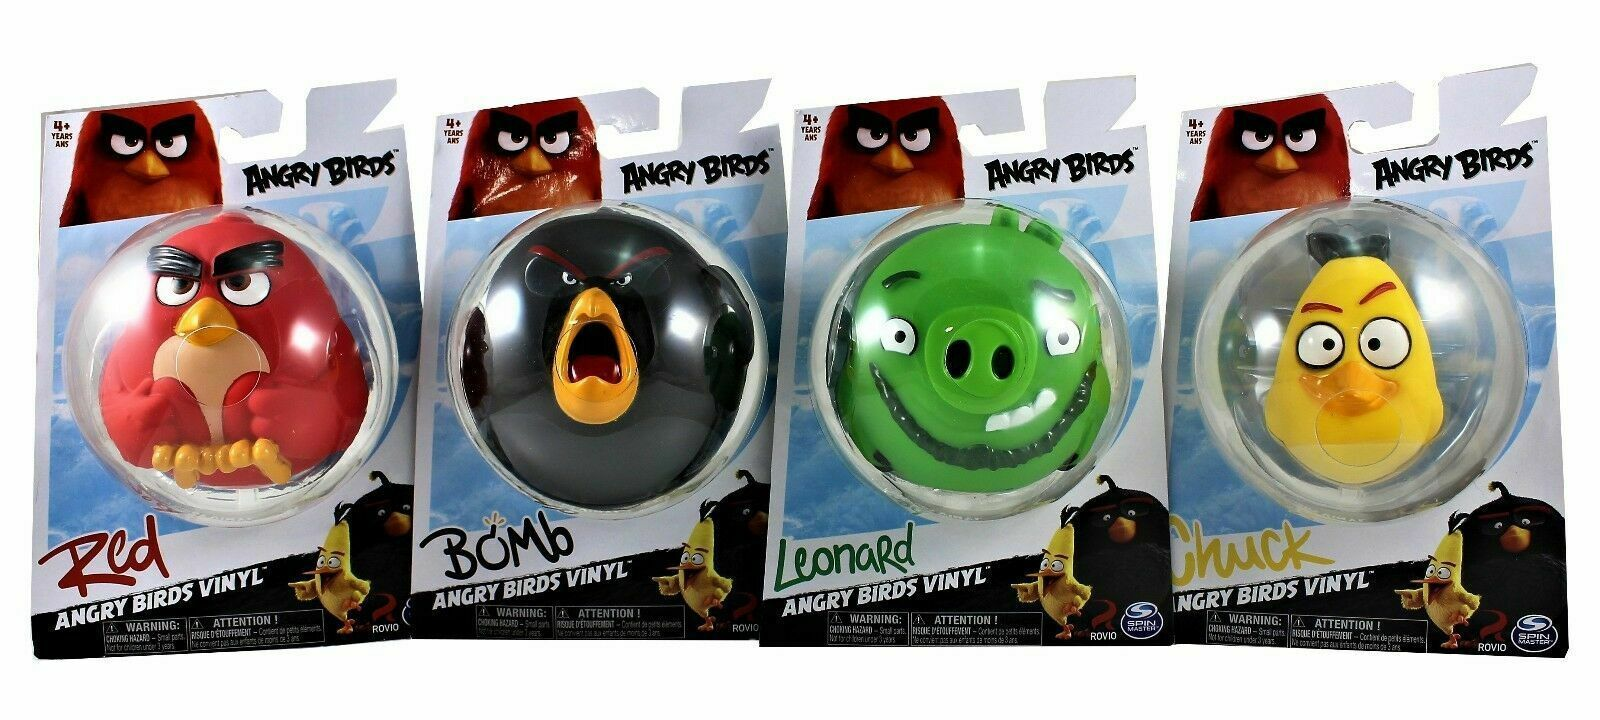 Angry Birds Vinyl Figures Lot of 4 Leonard, Chuck, Bomb and Red New Collectible